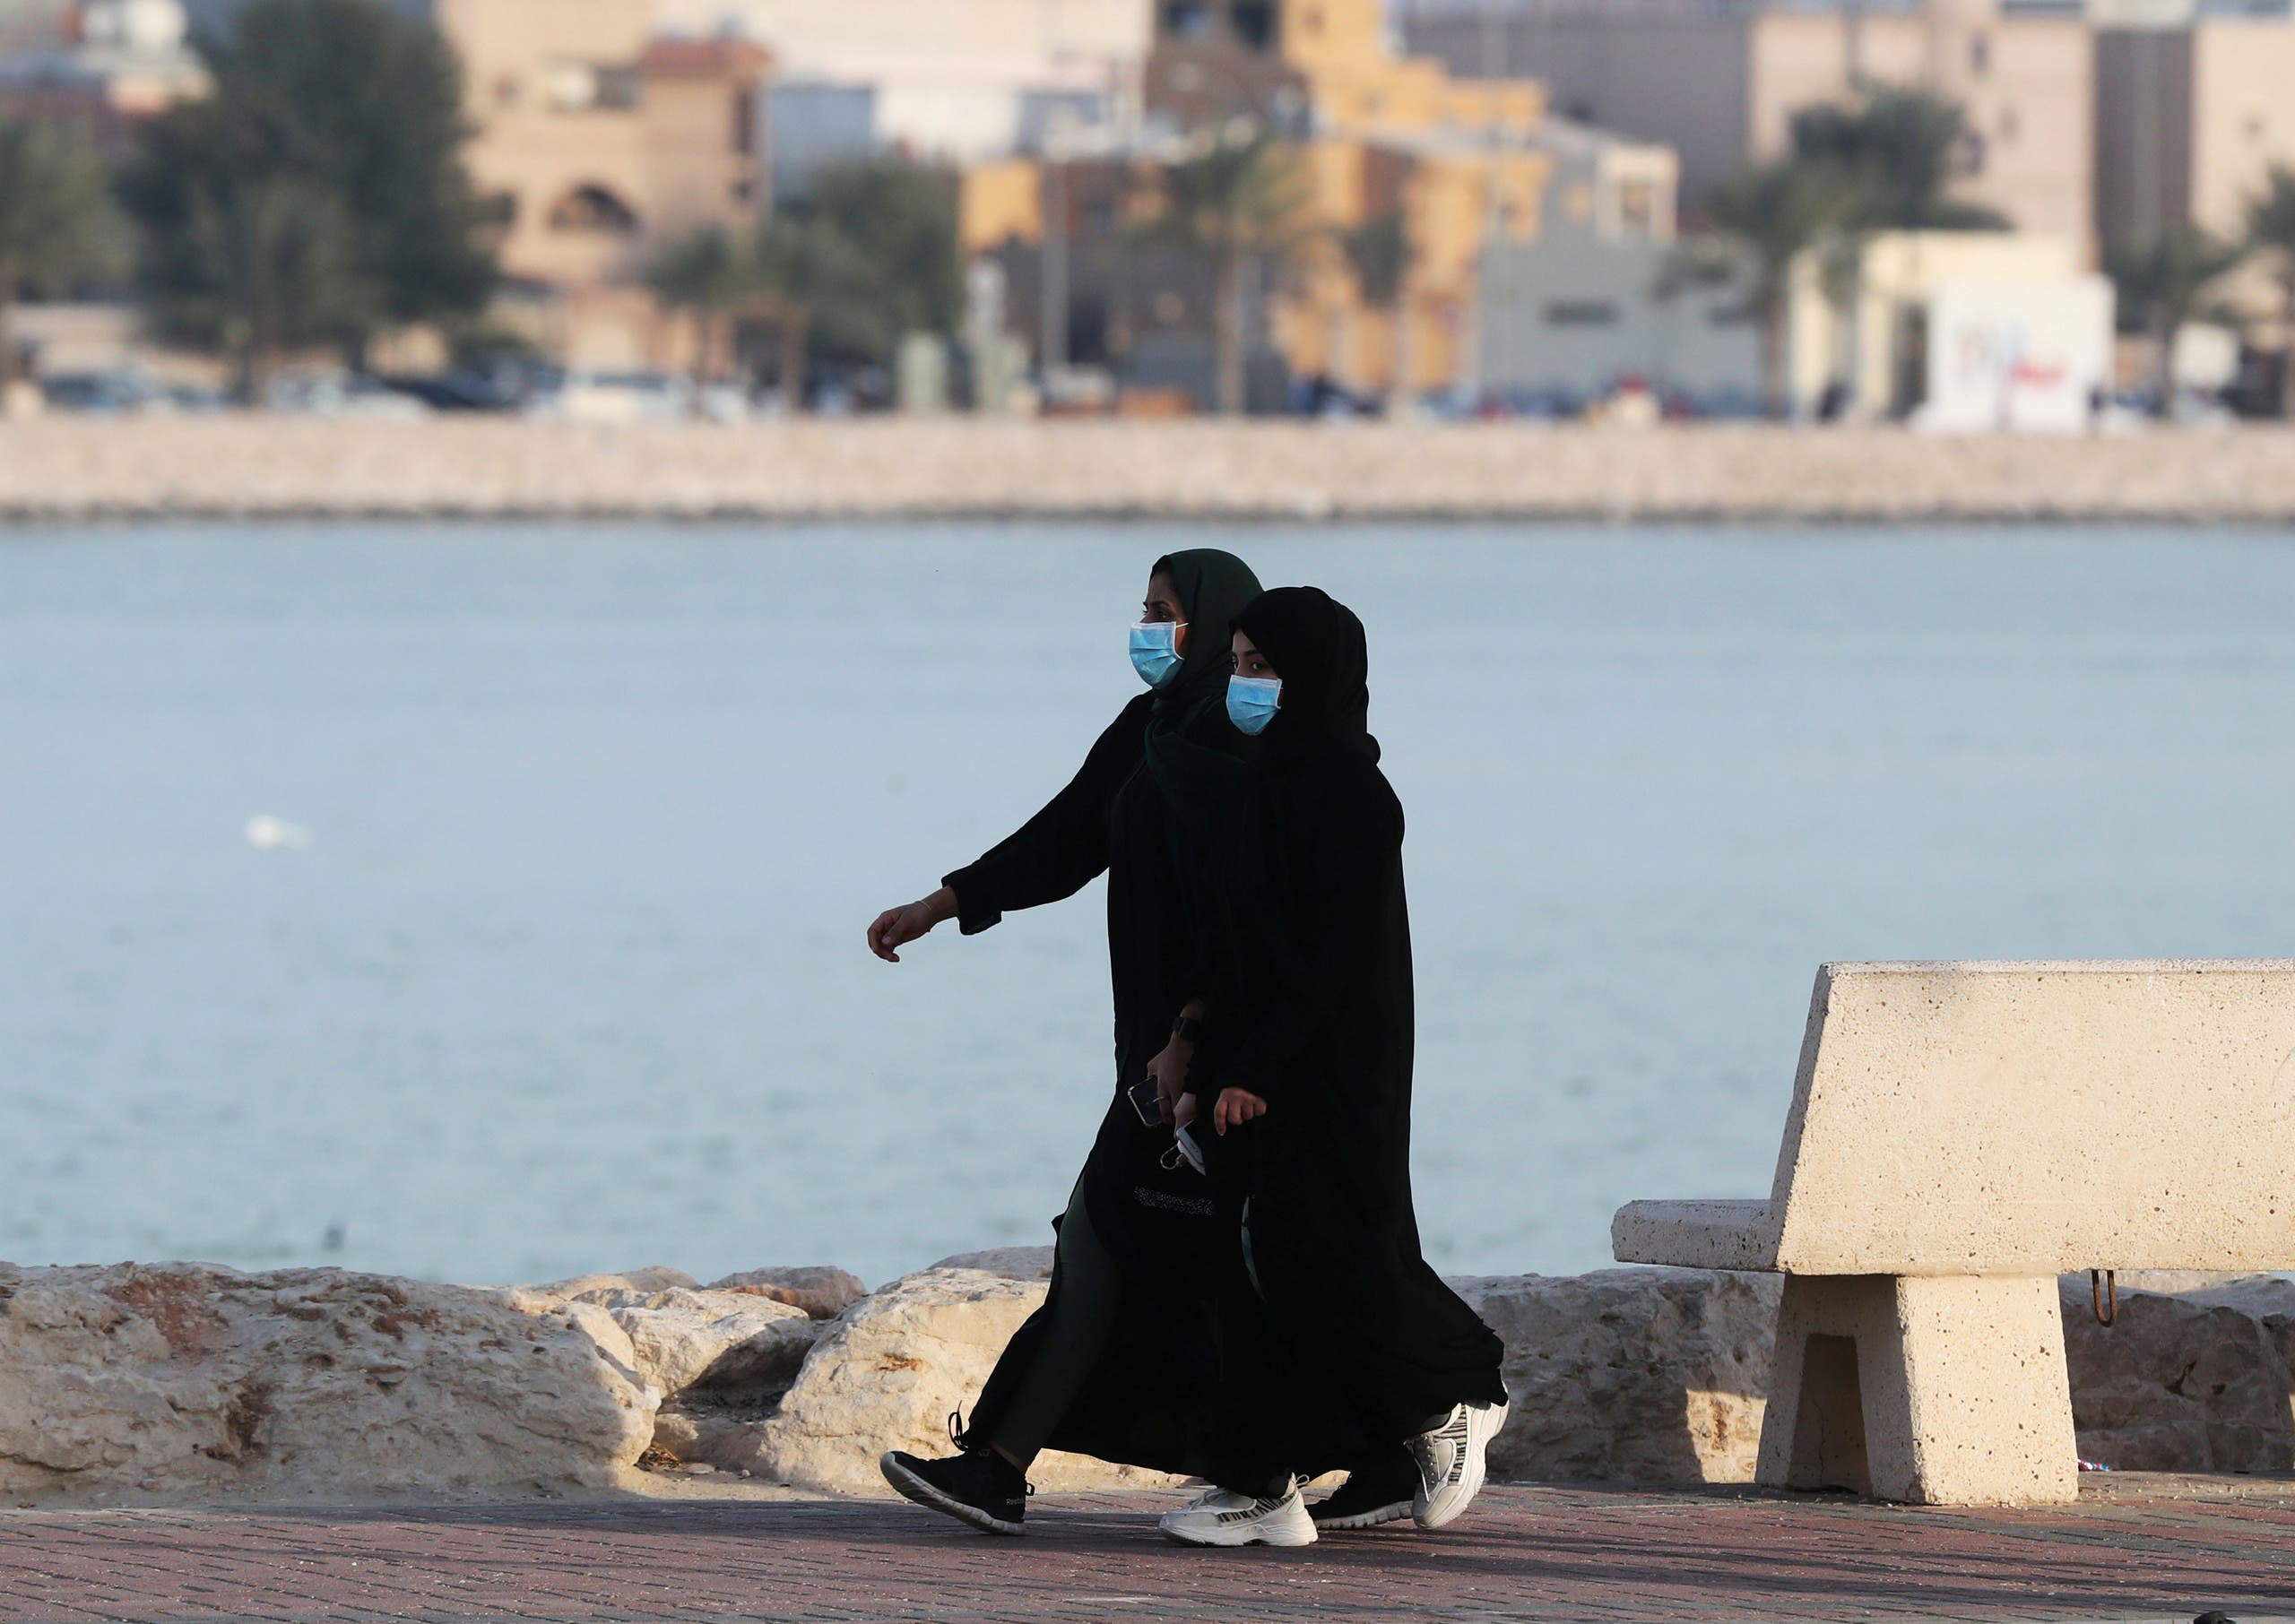 Women wear protective face masks, as they walk, after Saudi Arabia imposed a temporary lockdown on the province of Qatif, following the spread of coronavirus, in Qatif, Saudi Arabia March 10, 2020. (File photo; Reuters)